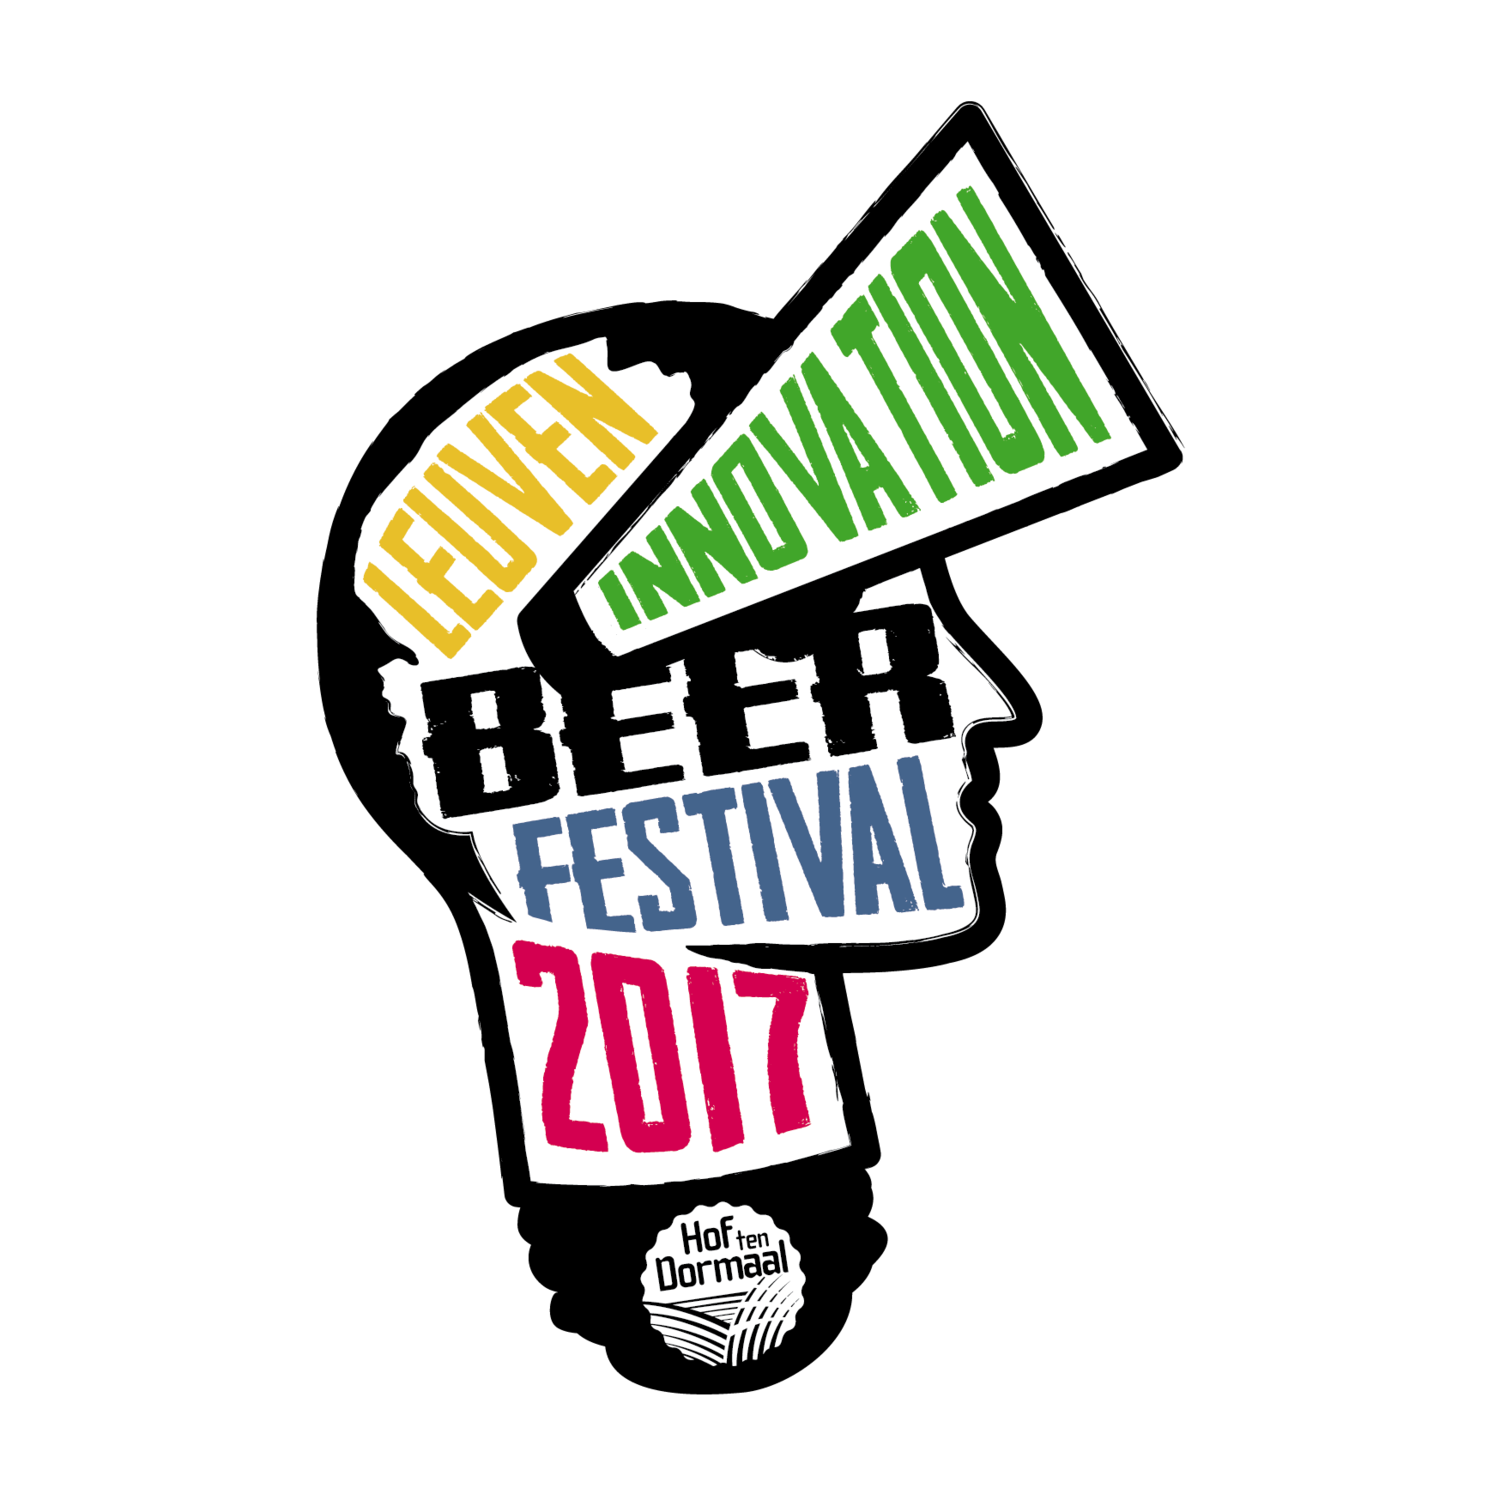 Leuven Innovation Beer Festival